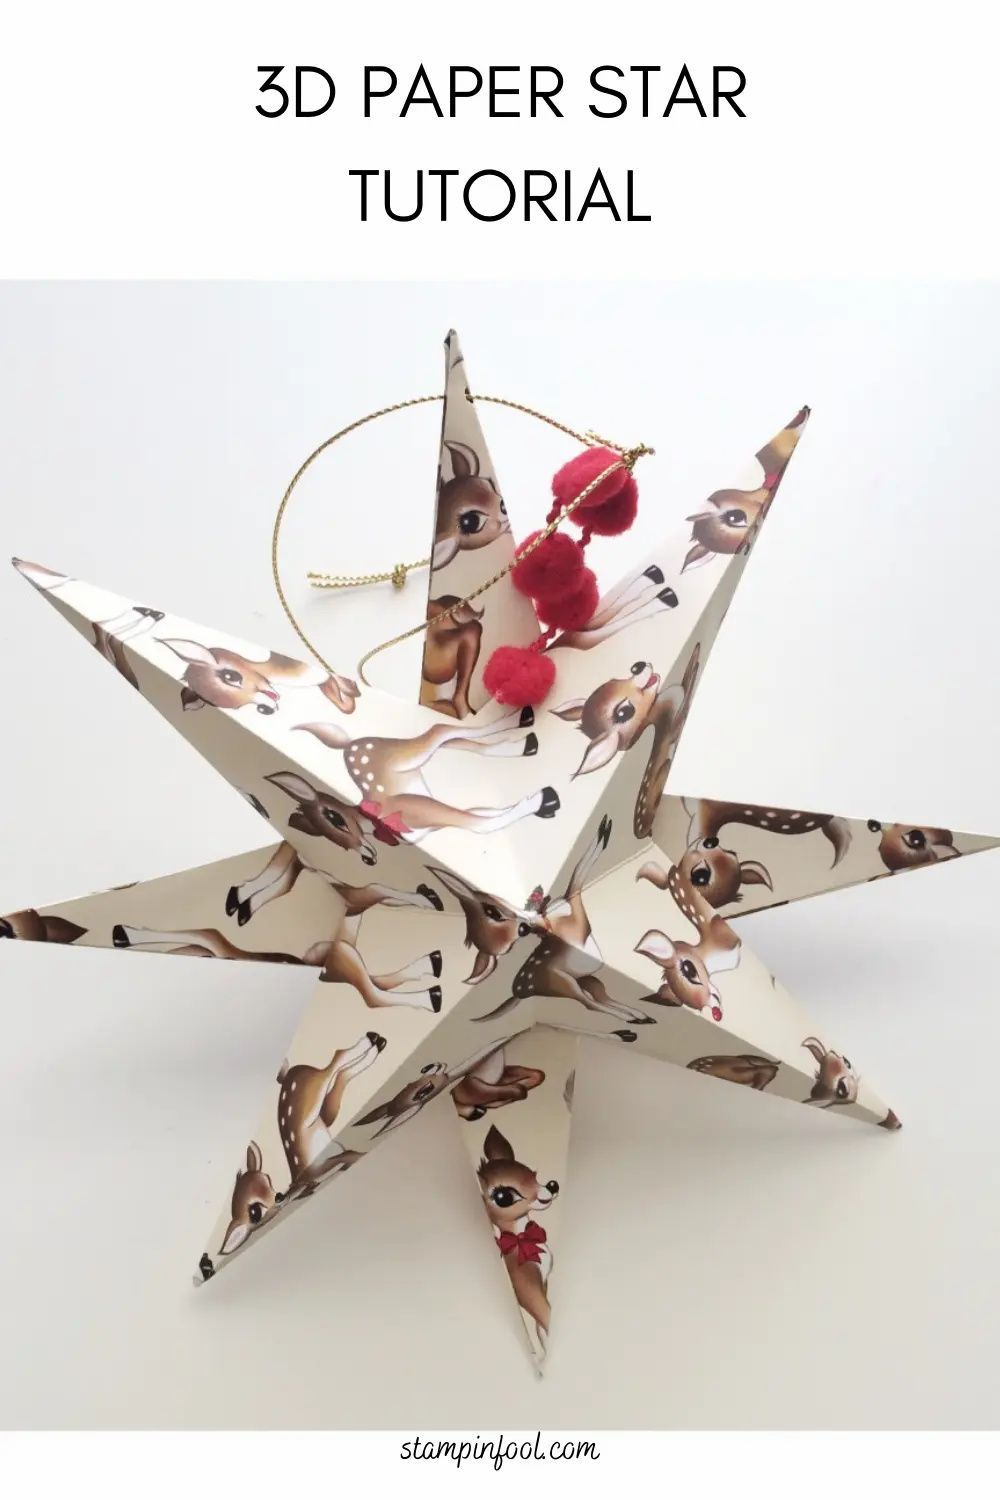 Diy 3d Paper Star Ornament Step By Step How To Ornaments Garland 3d Paper Star Ornament Tutorial Star Ornament